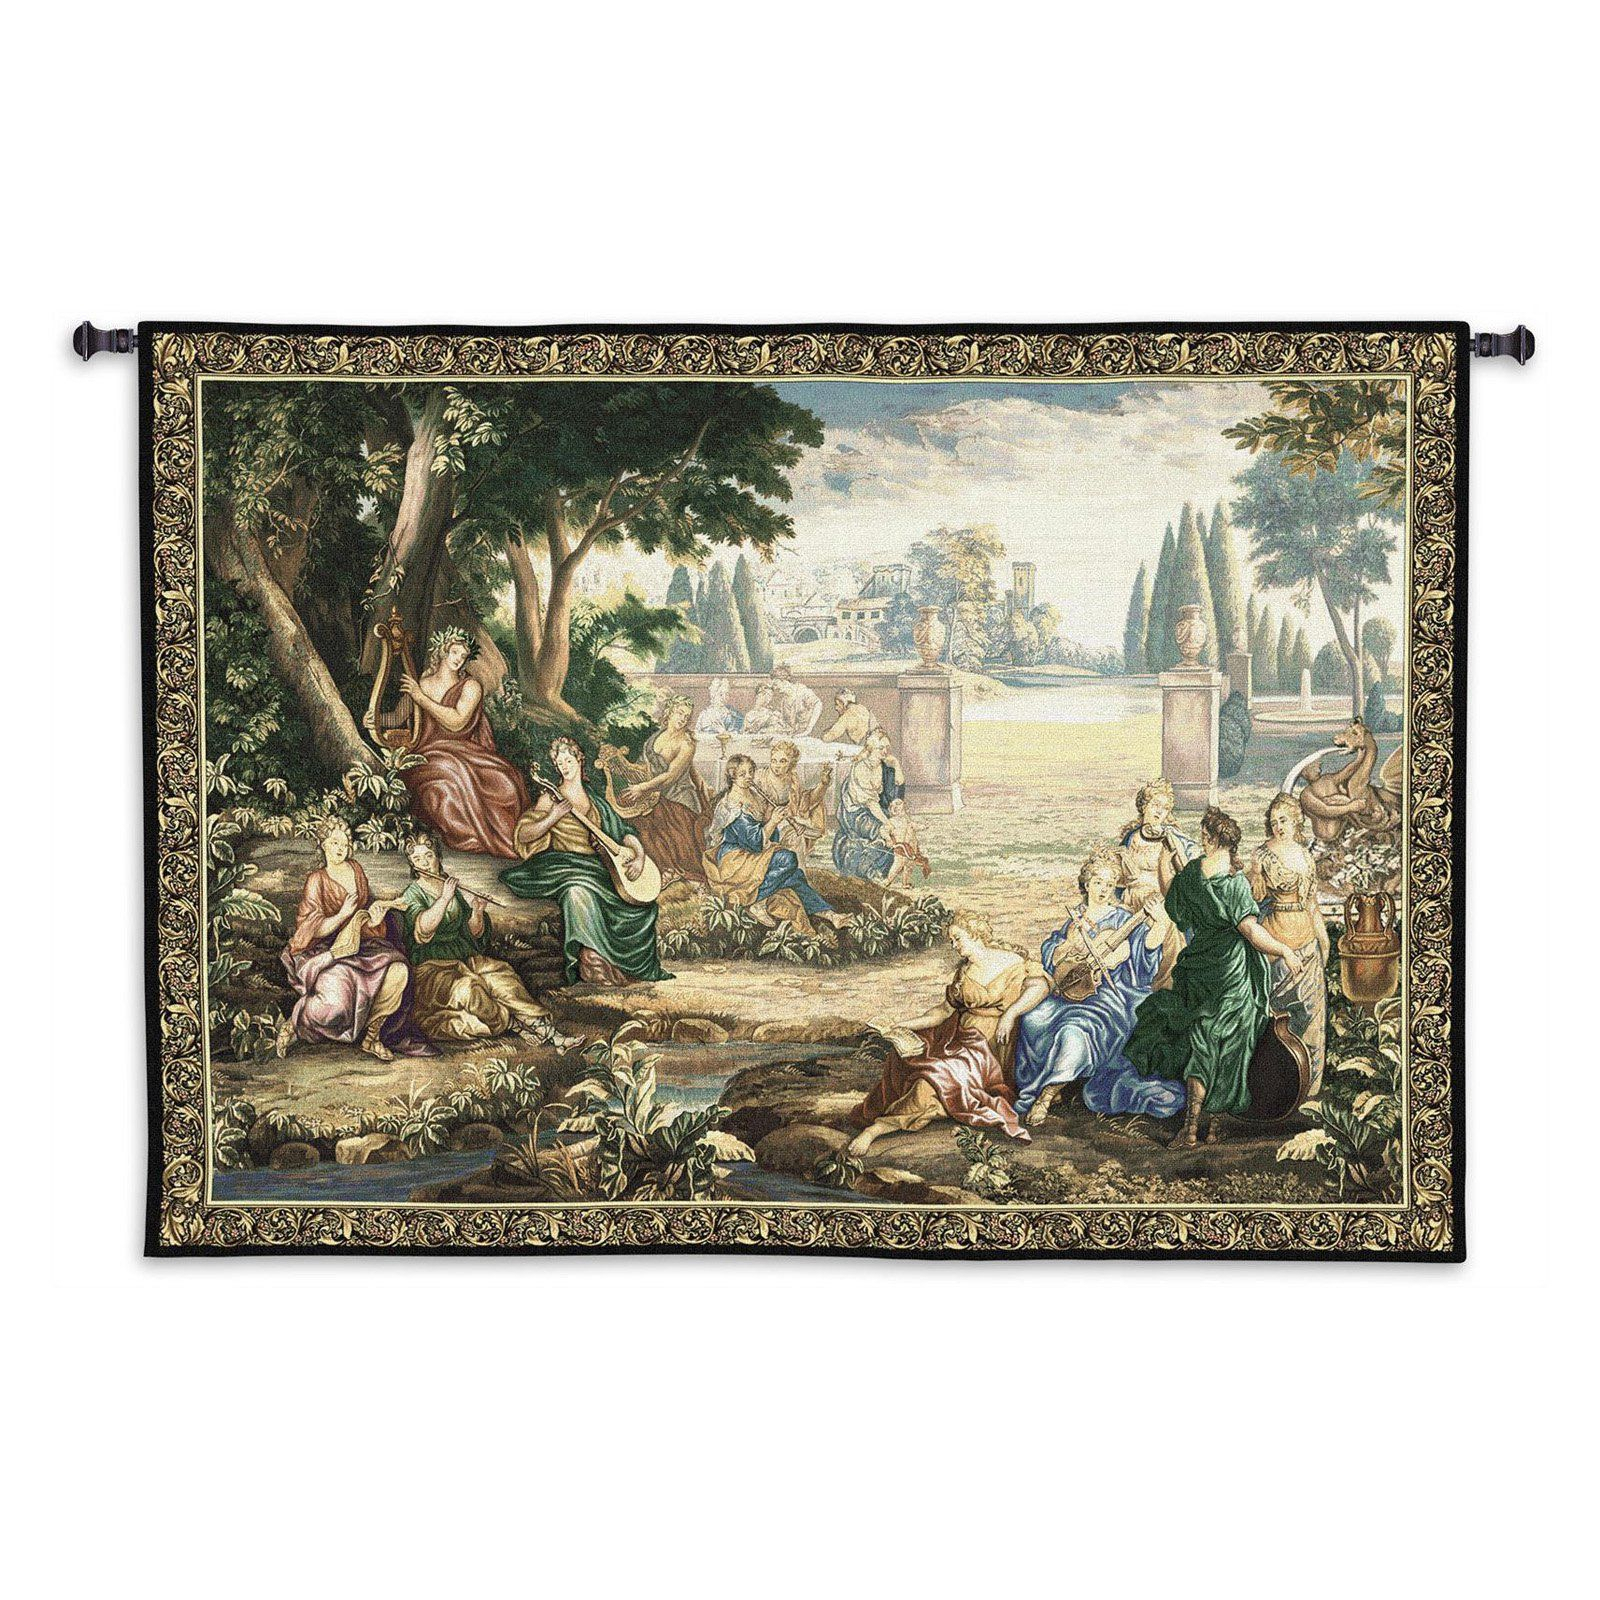 Fine Art Tapestries Romantic Pastoral Scene Cotton And Wool Throughout 2017 Grandes Armoiries I European Tapestries (View 18 of 20)